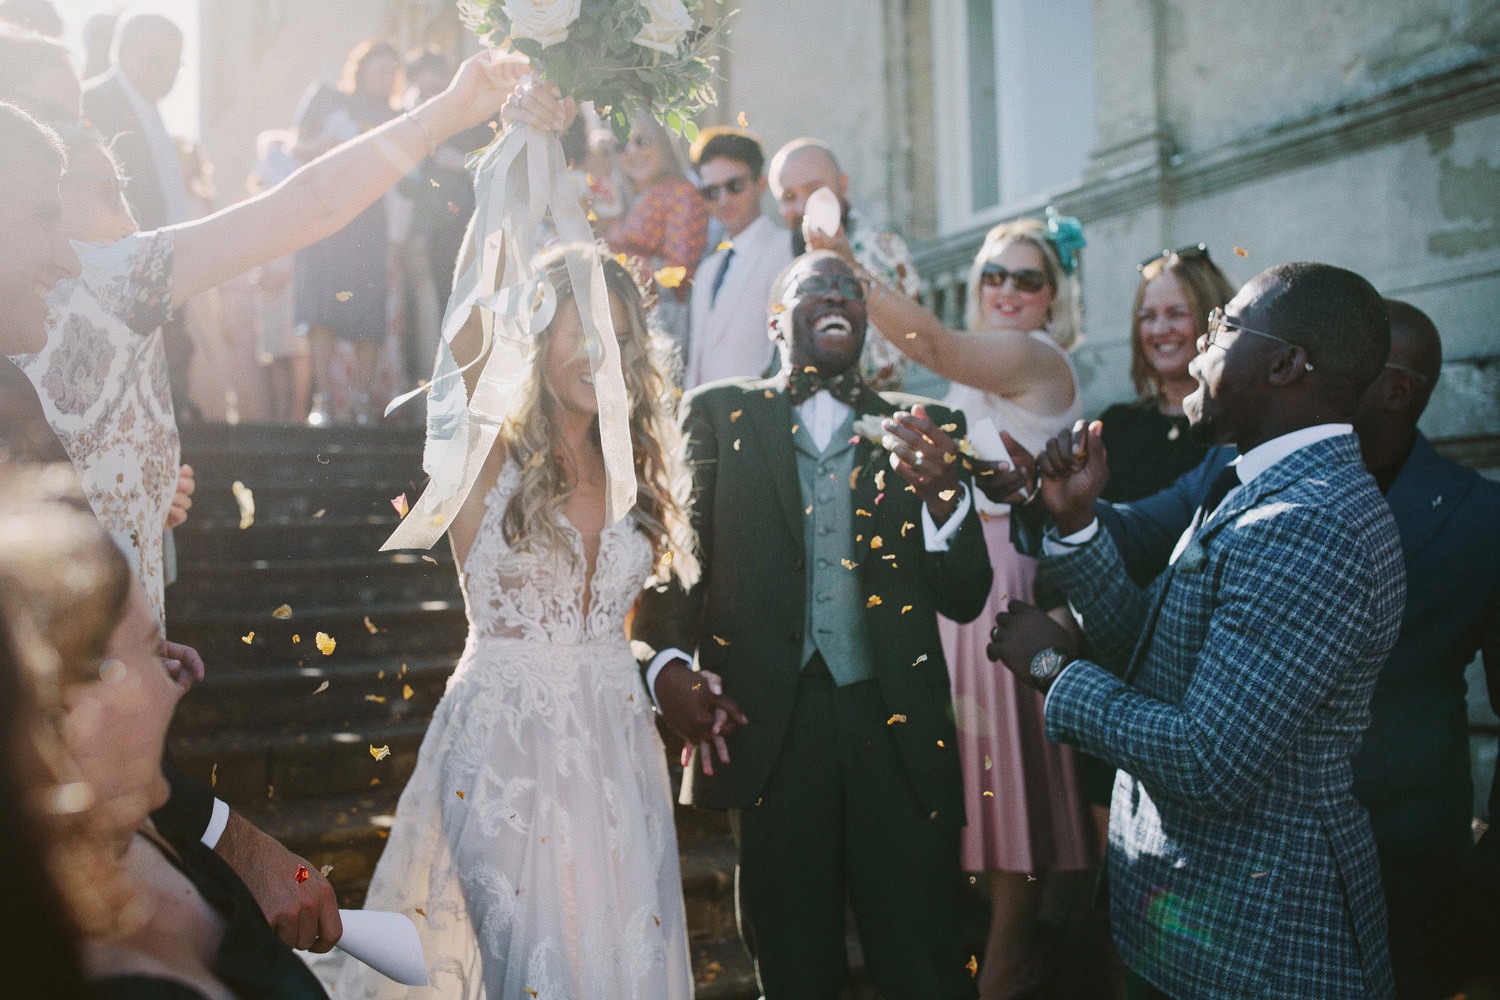 bride and groom walking down steps in sunlight with friends clapping